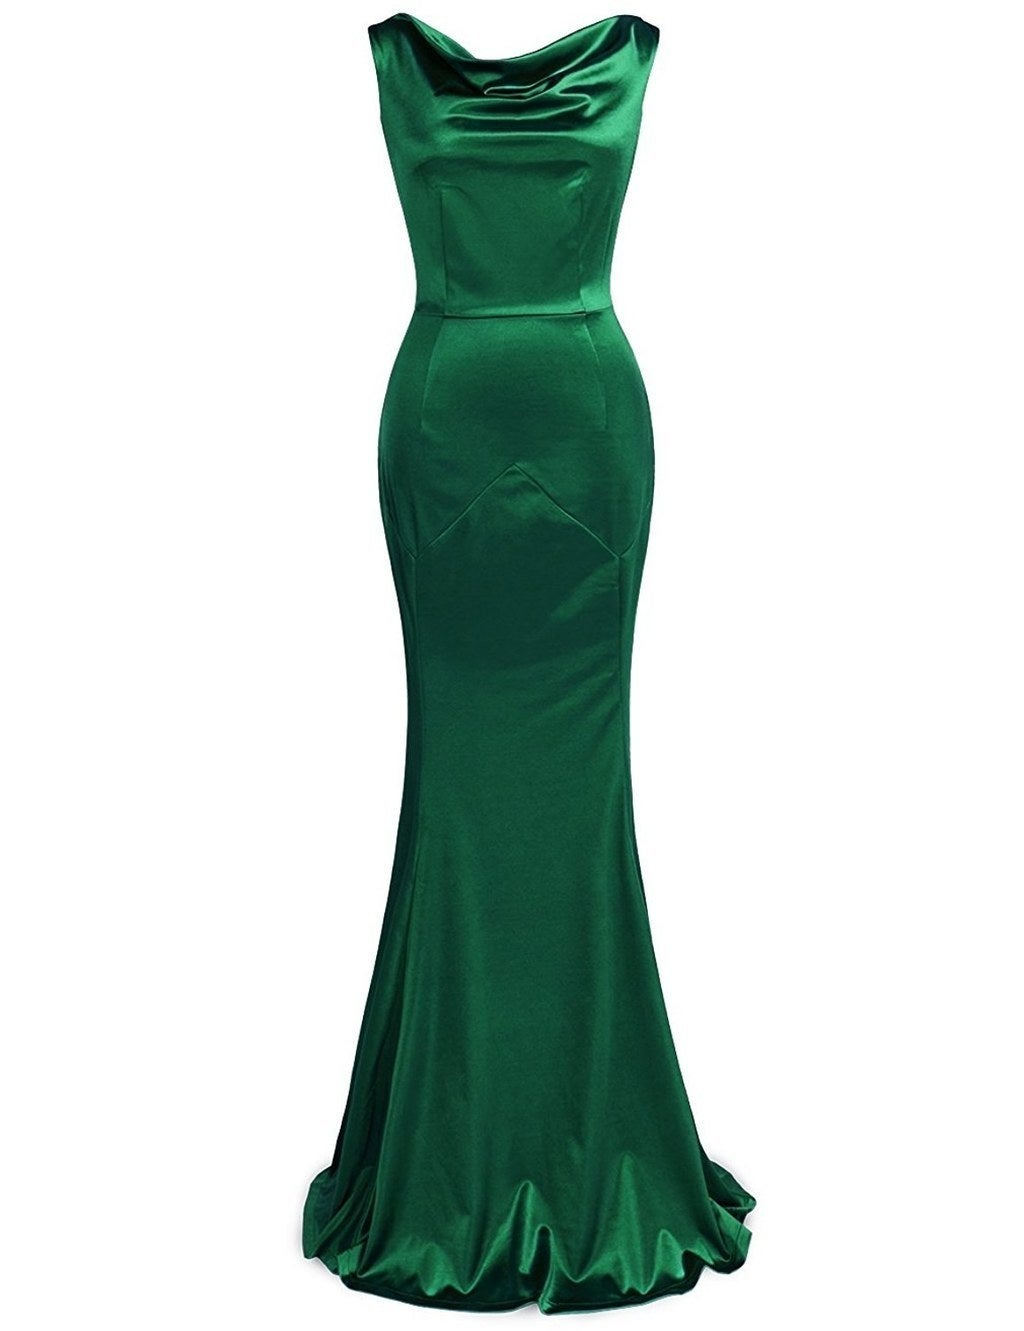 c87e3dc65de0 34 Of The Best Formal Dresses You Can Get On Amazon